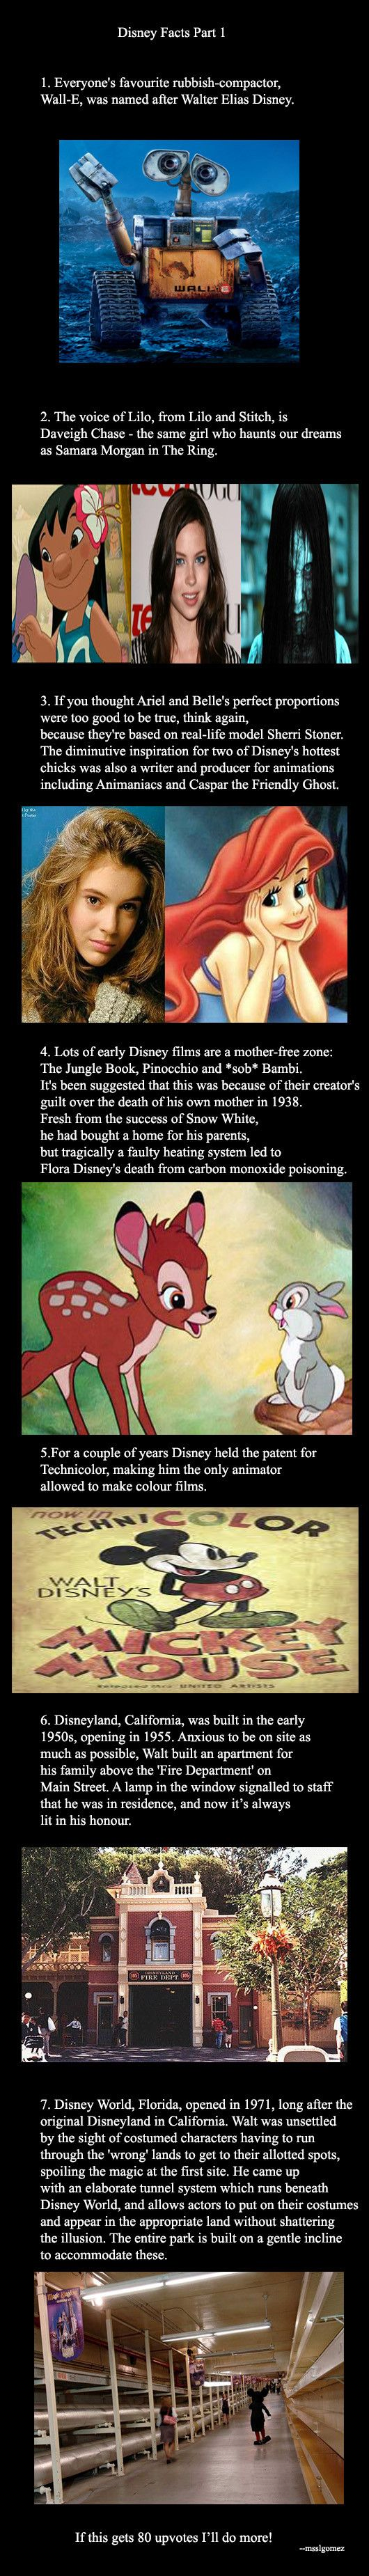 Disney Facts Part 1 - I actually didn't know about his mother! I always read that she died before Snow White came out, but this is so much more heartbreaking.